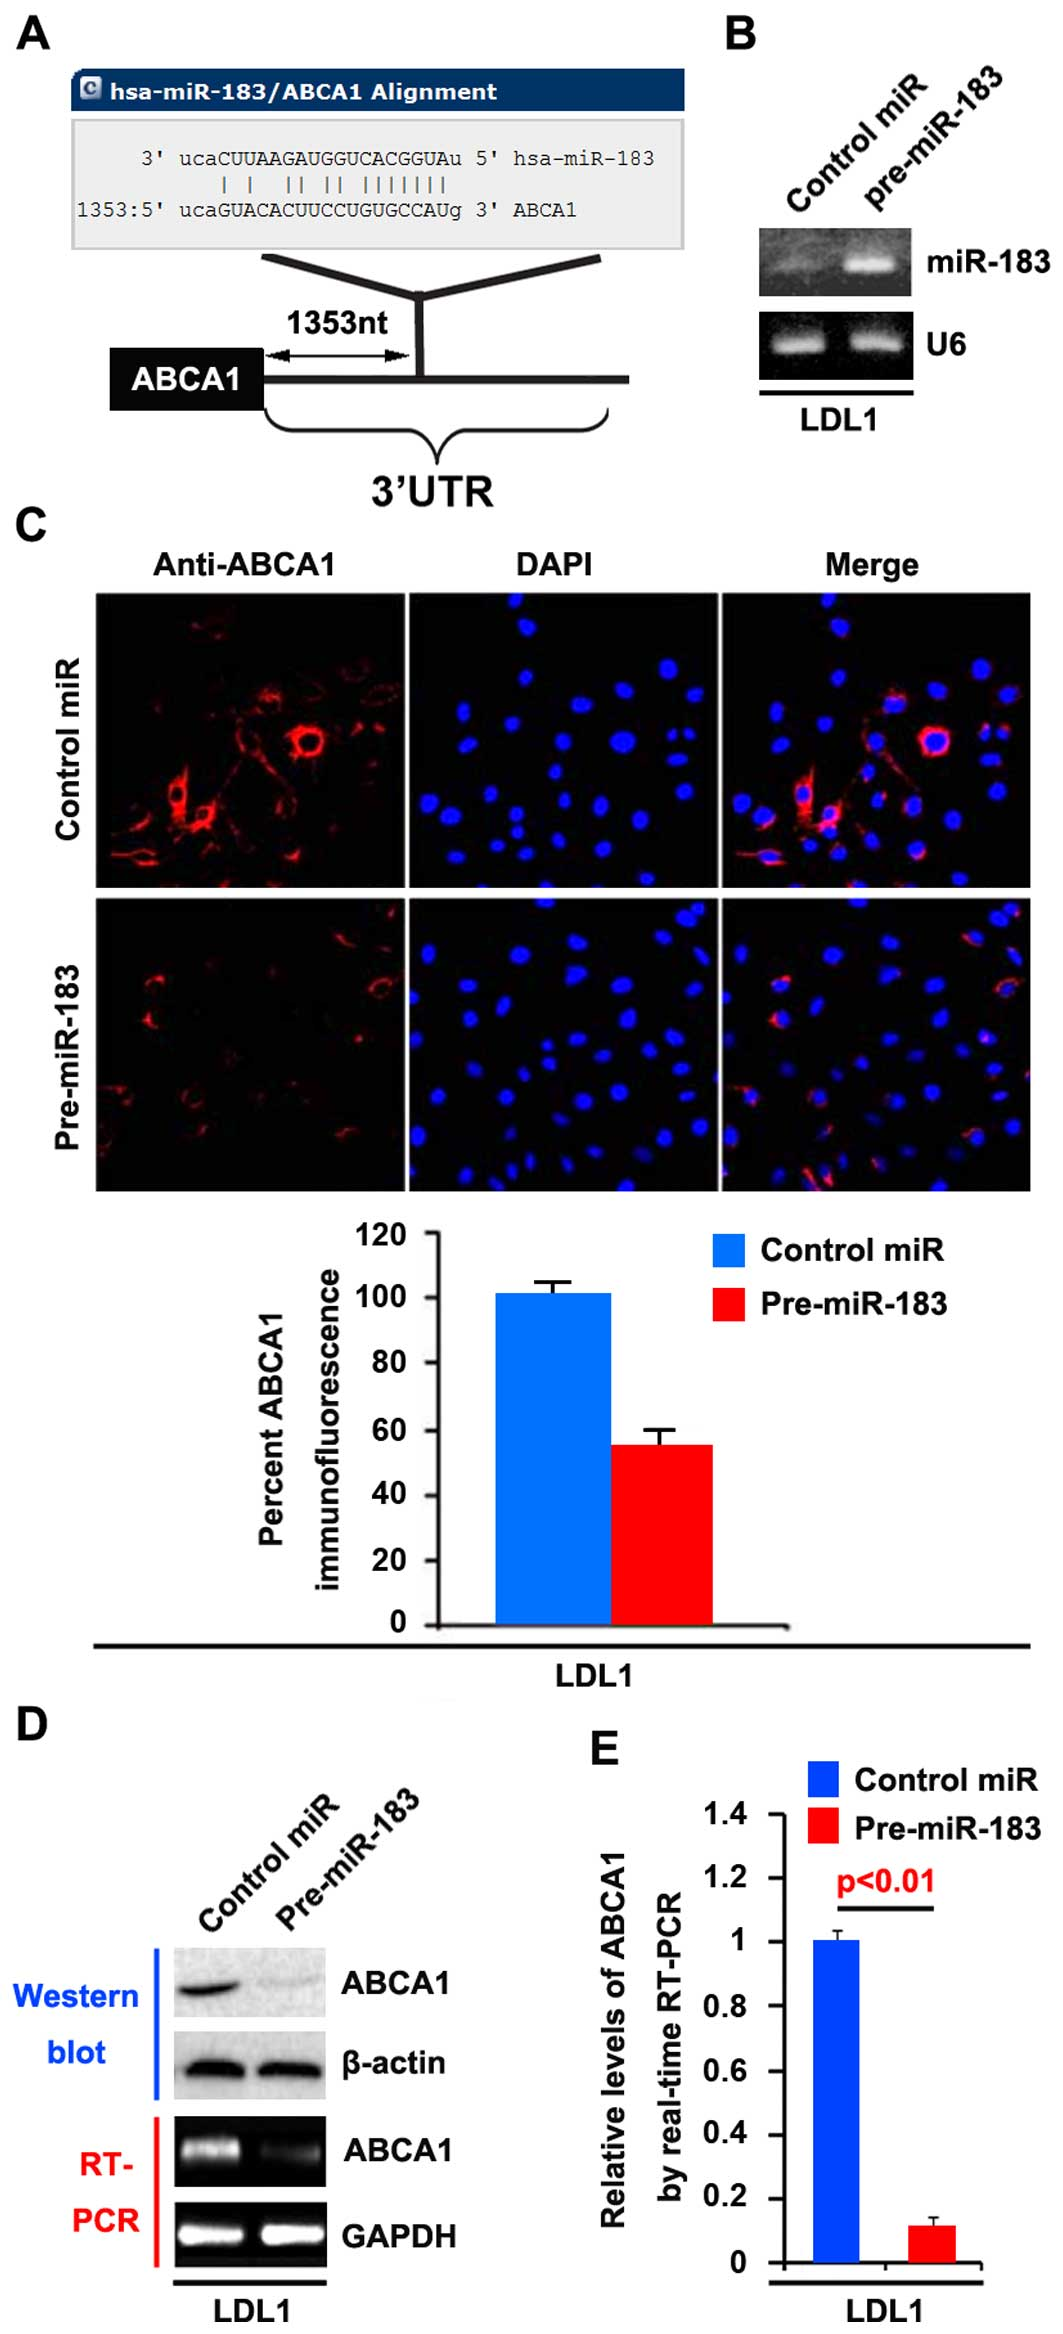 (C) Immunofluorescence analyses for LDL1 cells transfected with pre-miR-183  and control miR (mock). Upper panel shows microscopic images of ...